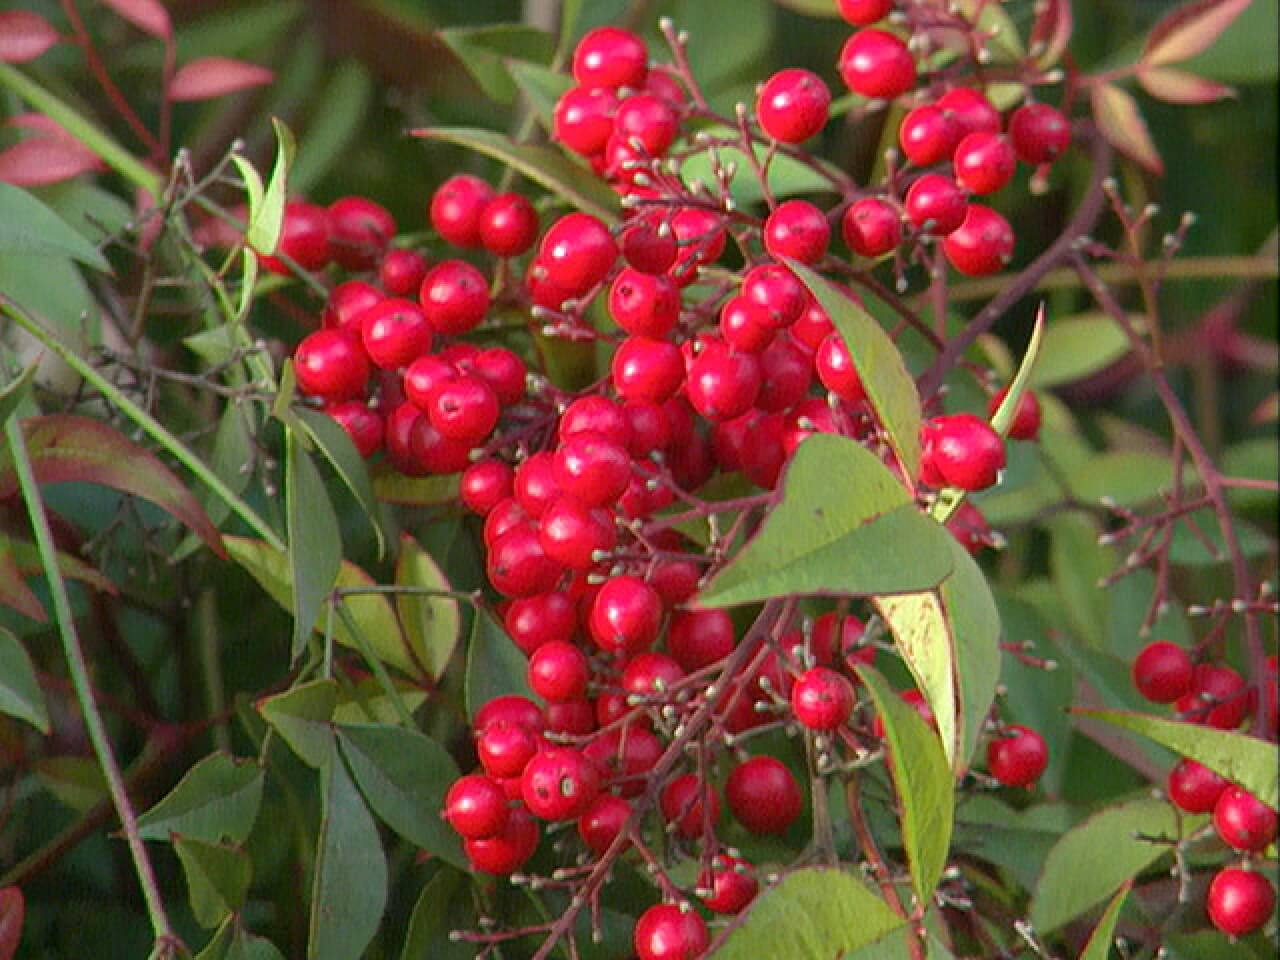 26 Types of Red Berries Growing on Trees and Shrub